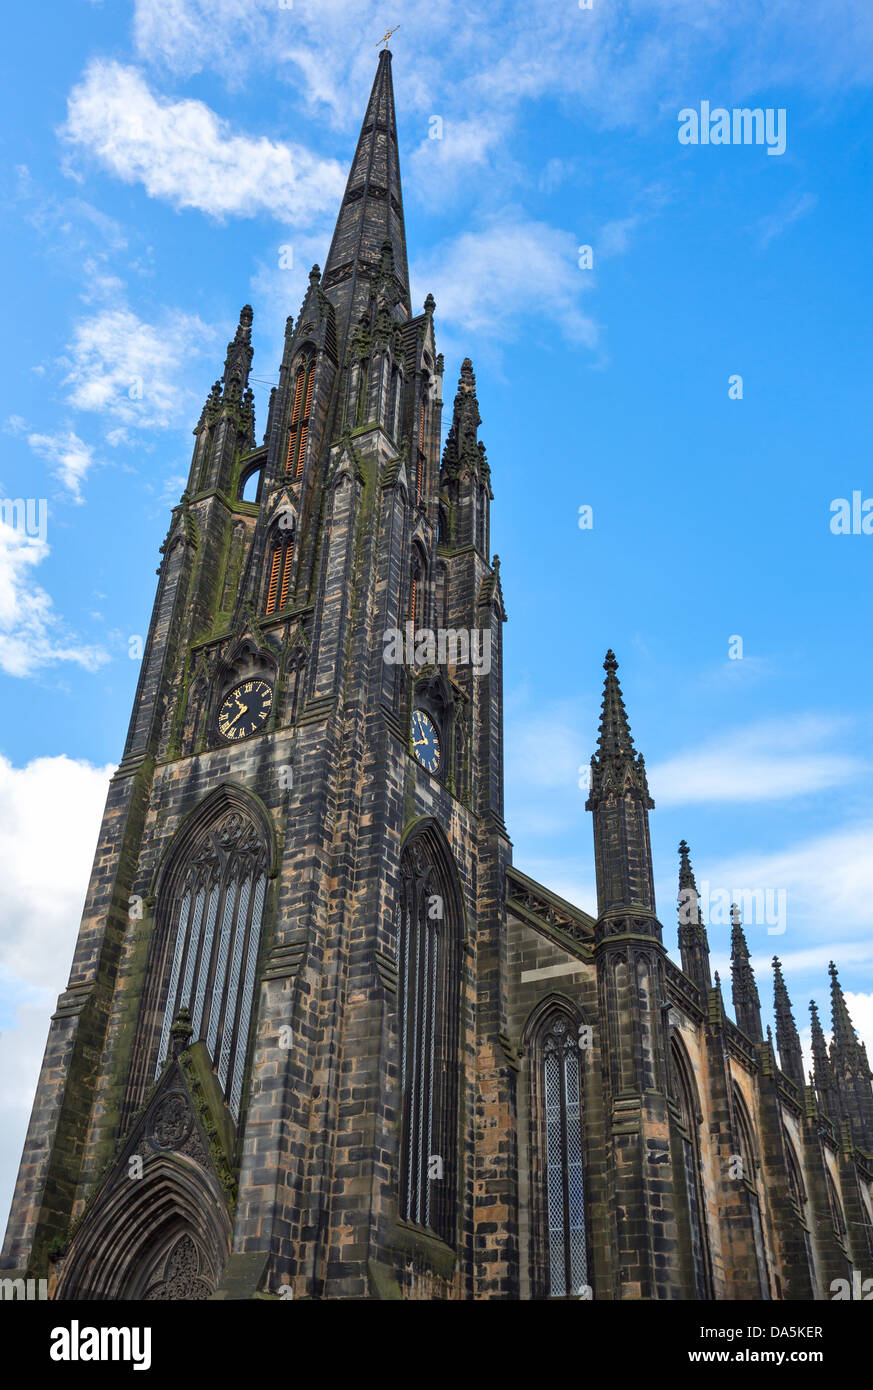 Europe Great Britain, Scotland, Edinburgh, Royal Mile, the Hub also known as Assembly hall. - Stock Image